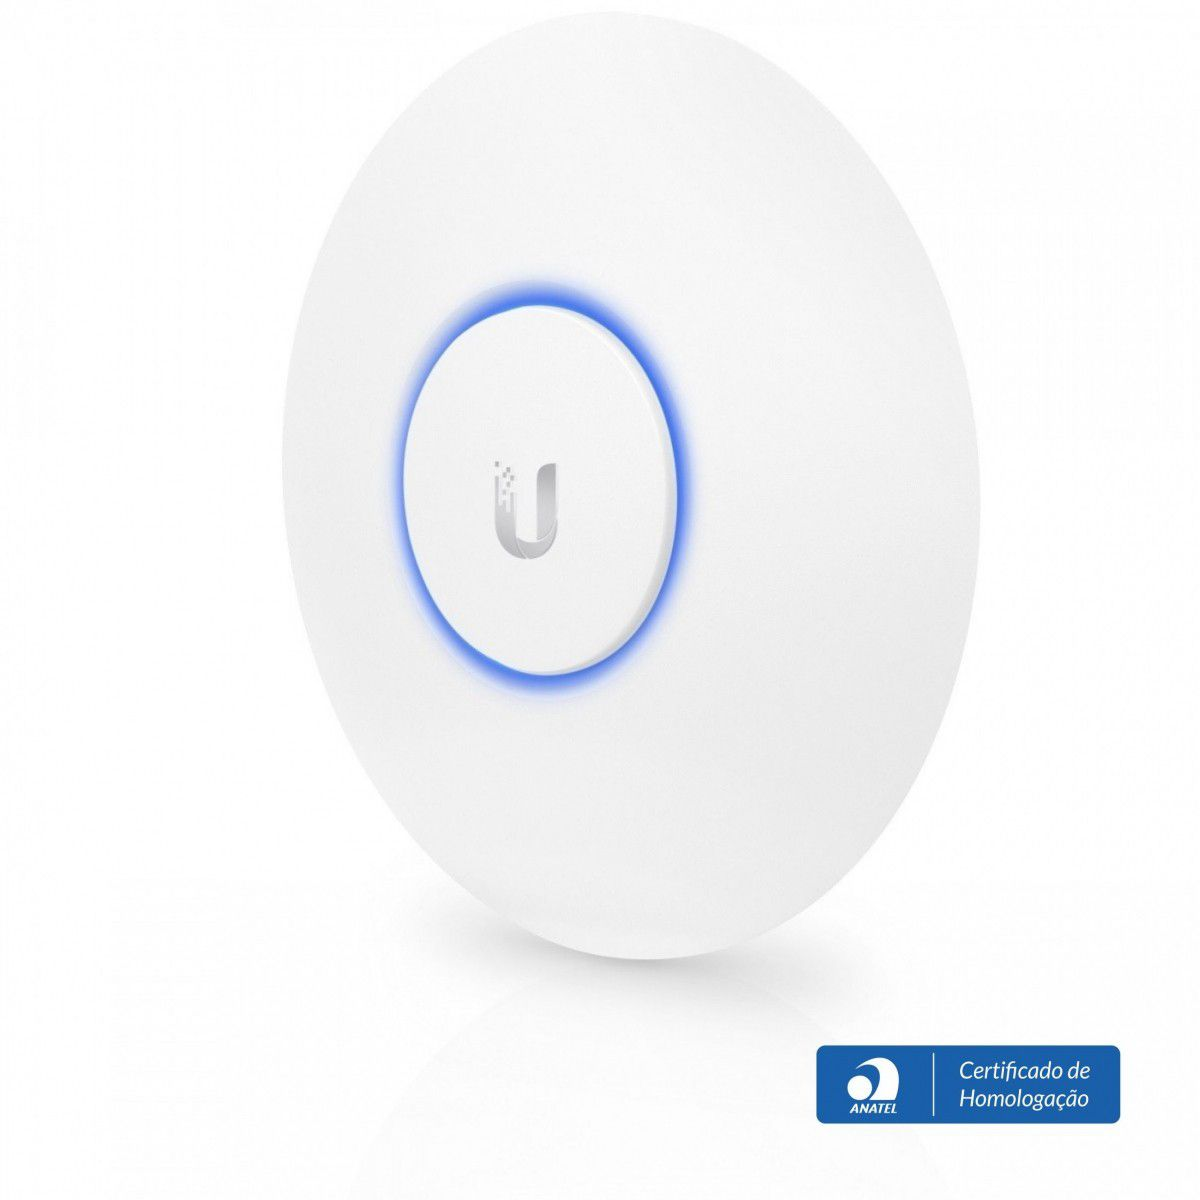 Access Point Longo Alcance UNIFI AP AC UBIQUITI